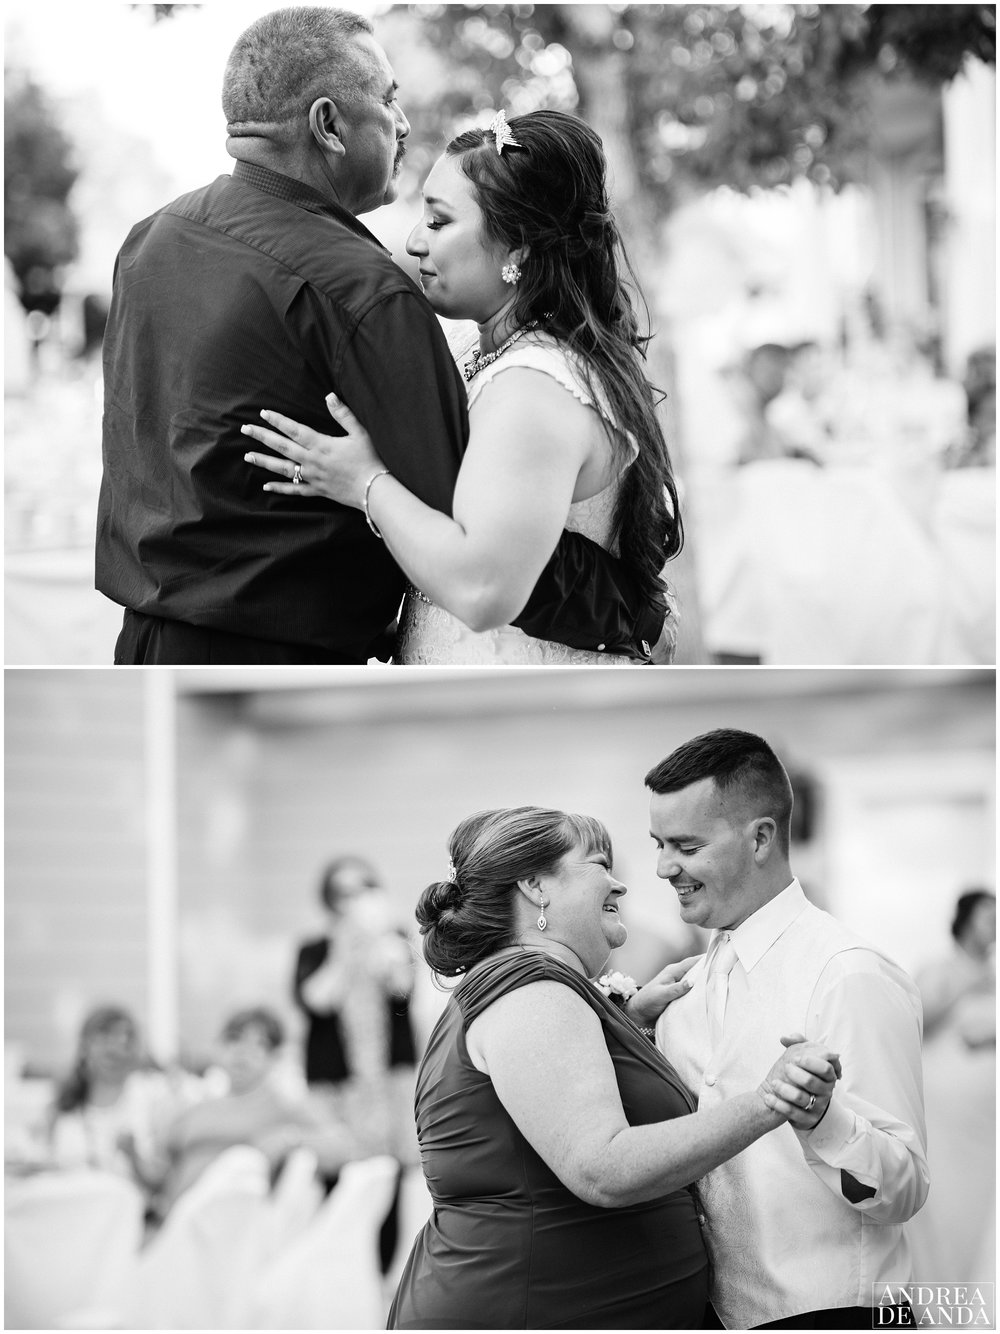 Bride and father first dance, Mother and Groom first dance, emotional beautiful dances.